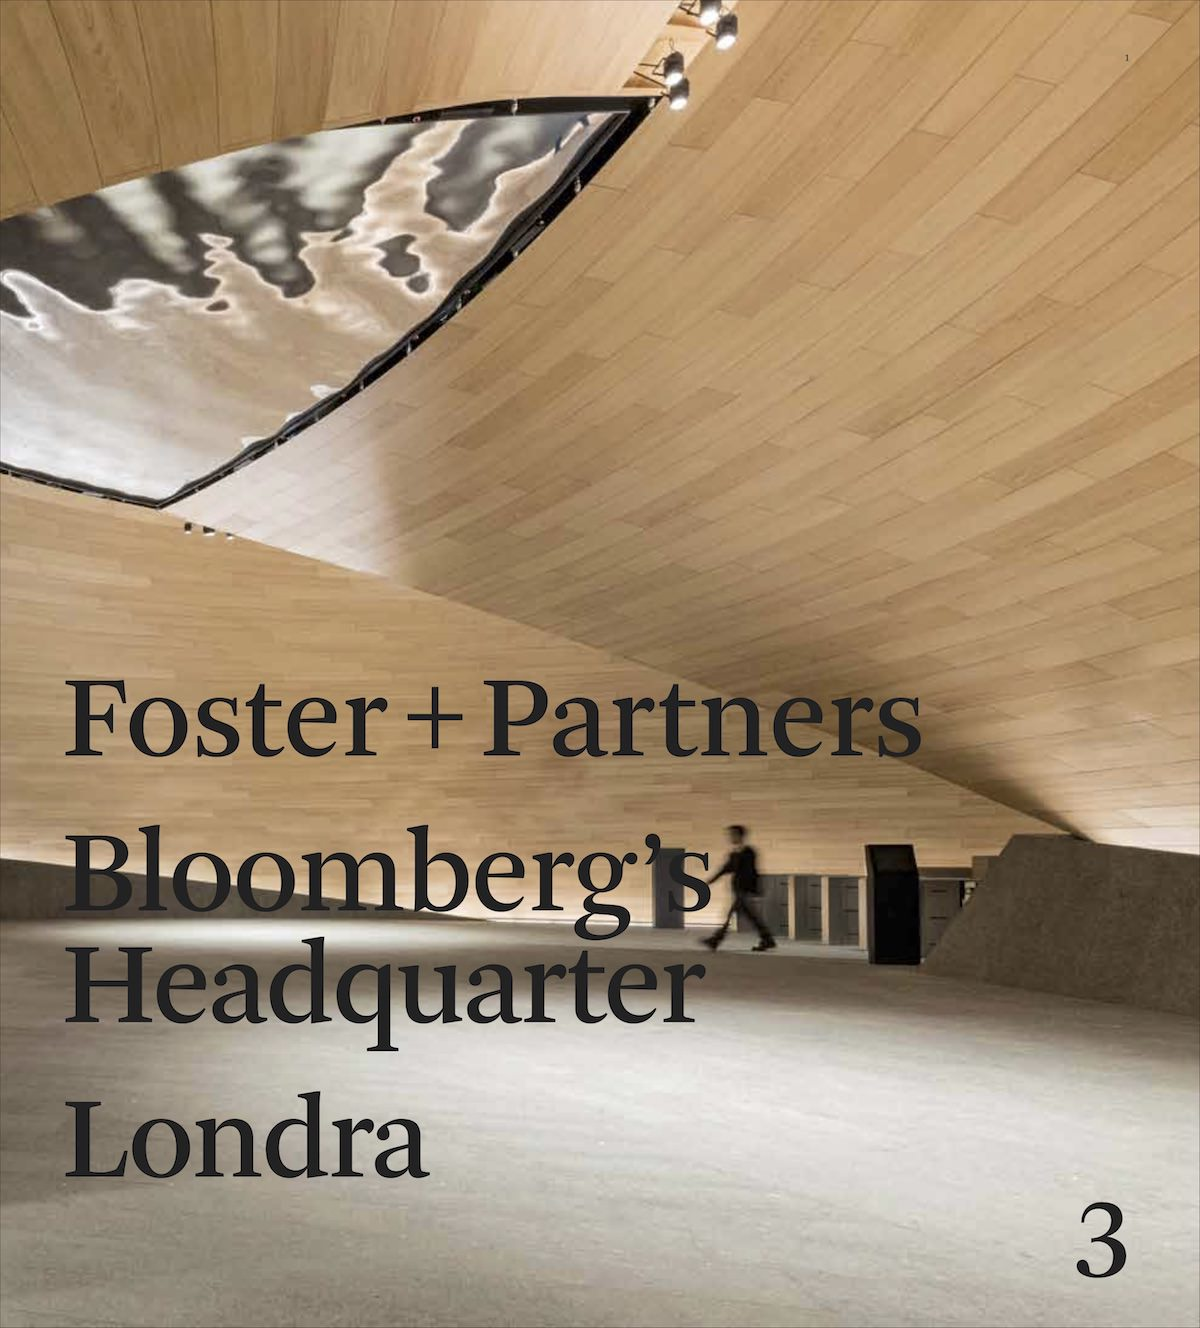 891 FOSTER + PARTNERS